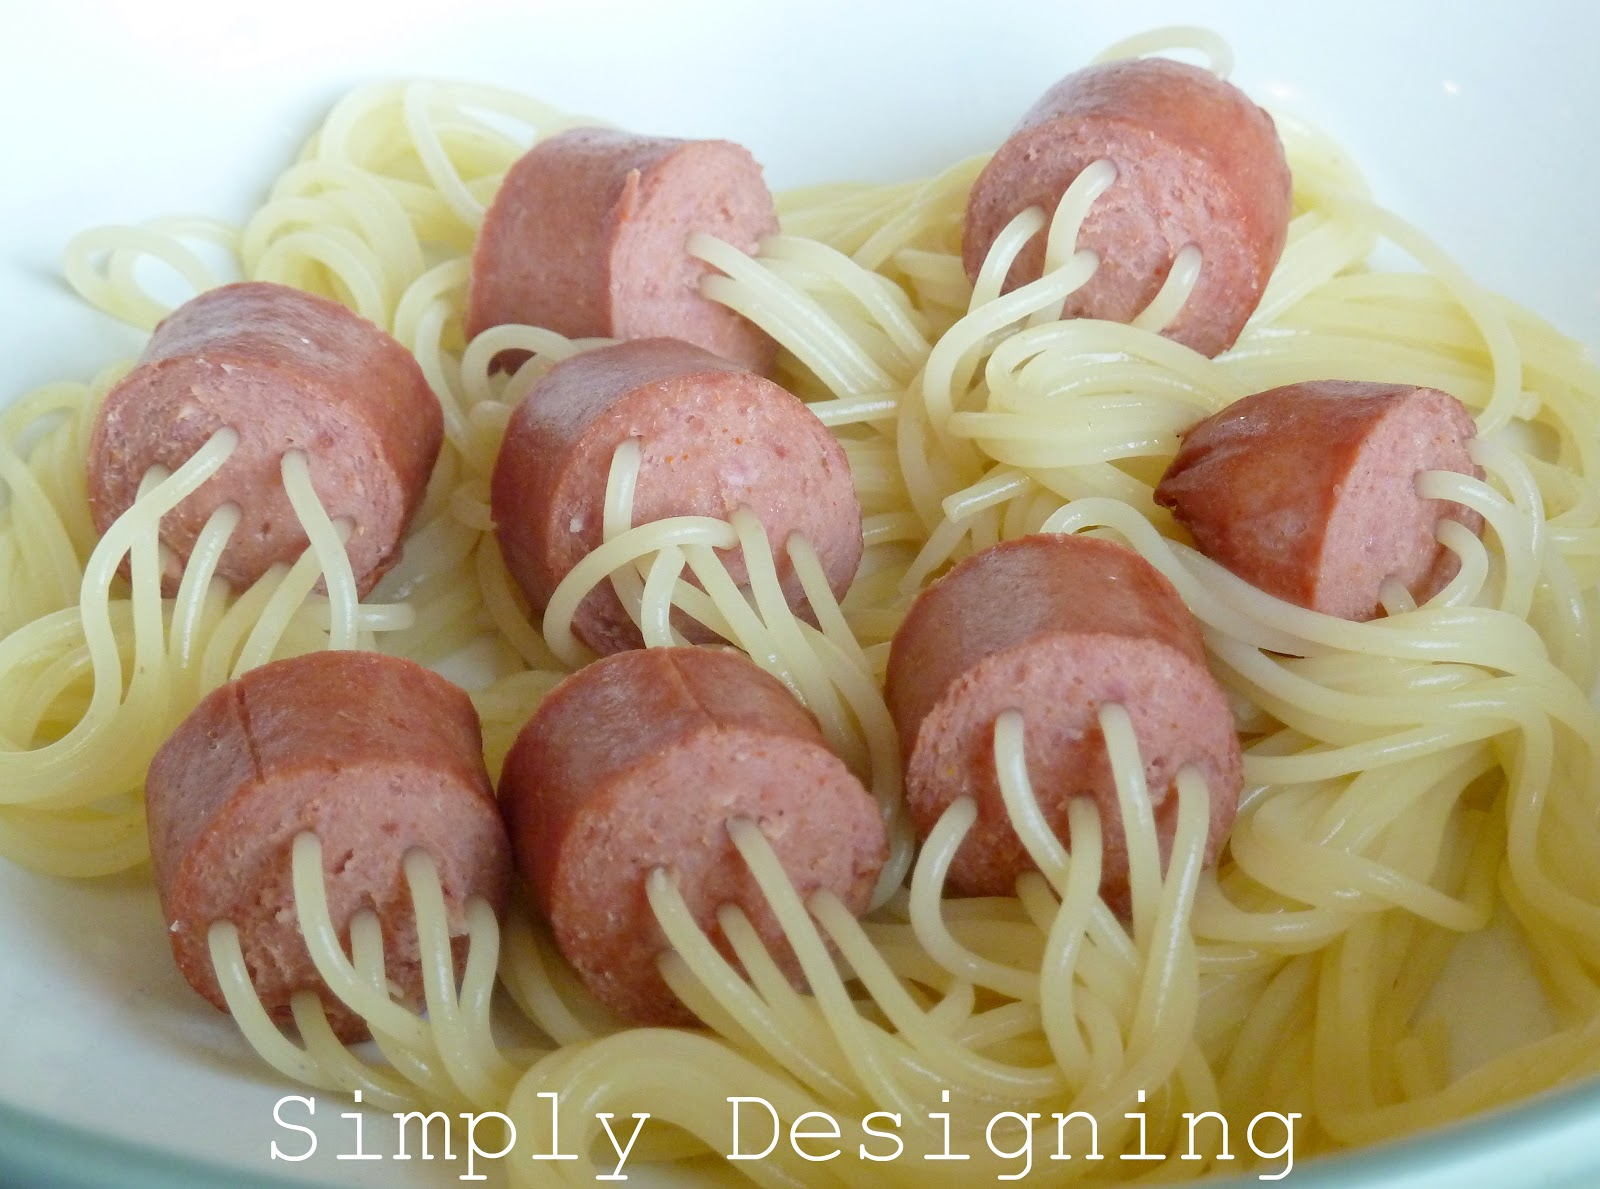 Spaghetti With Hot Dogs Cut Up In It